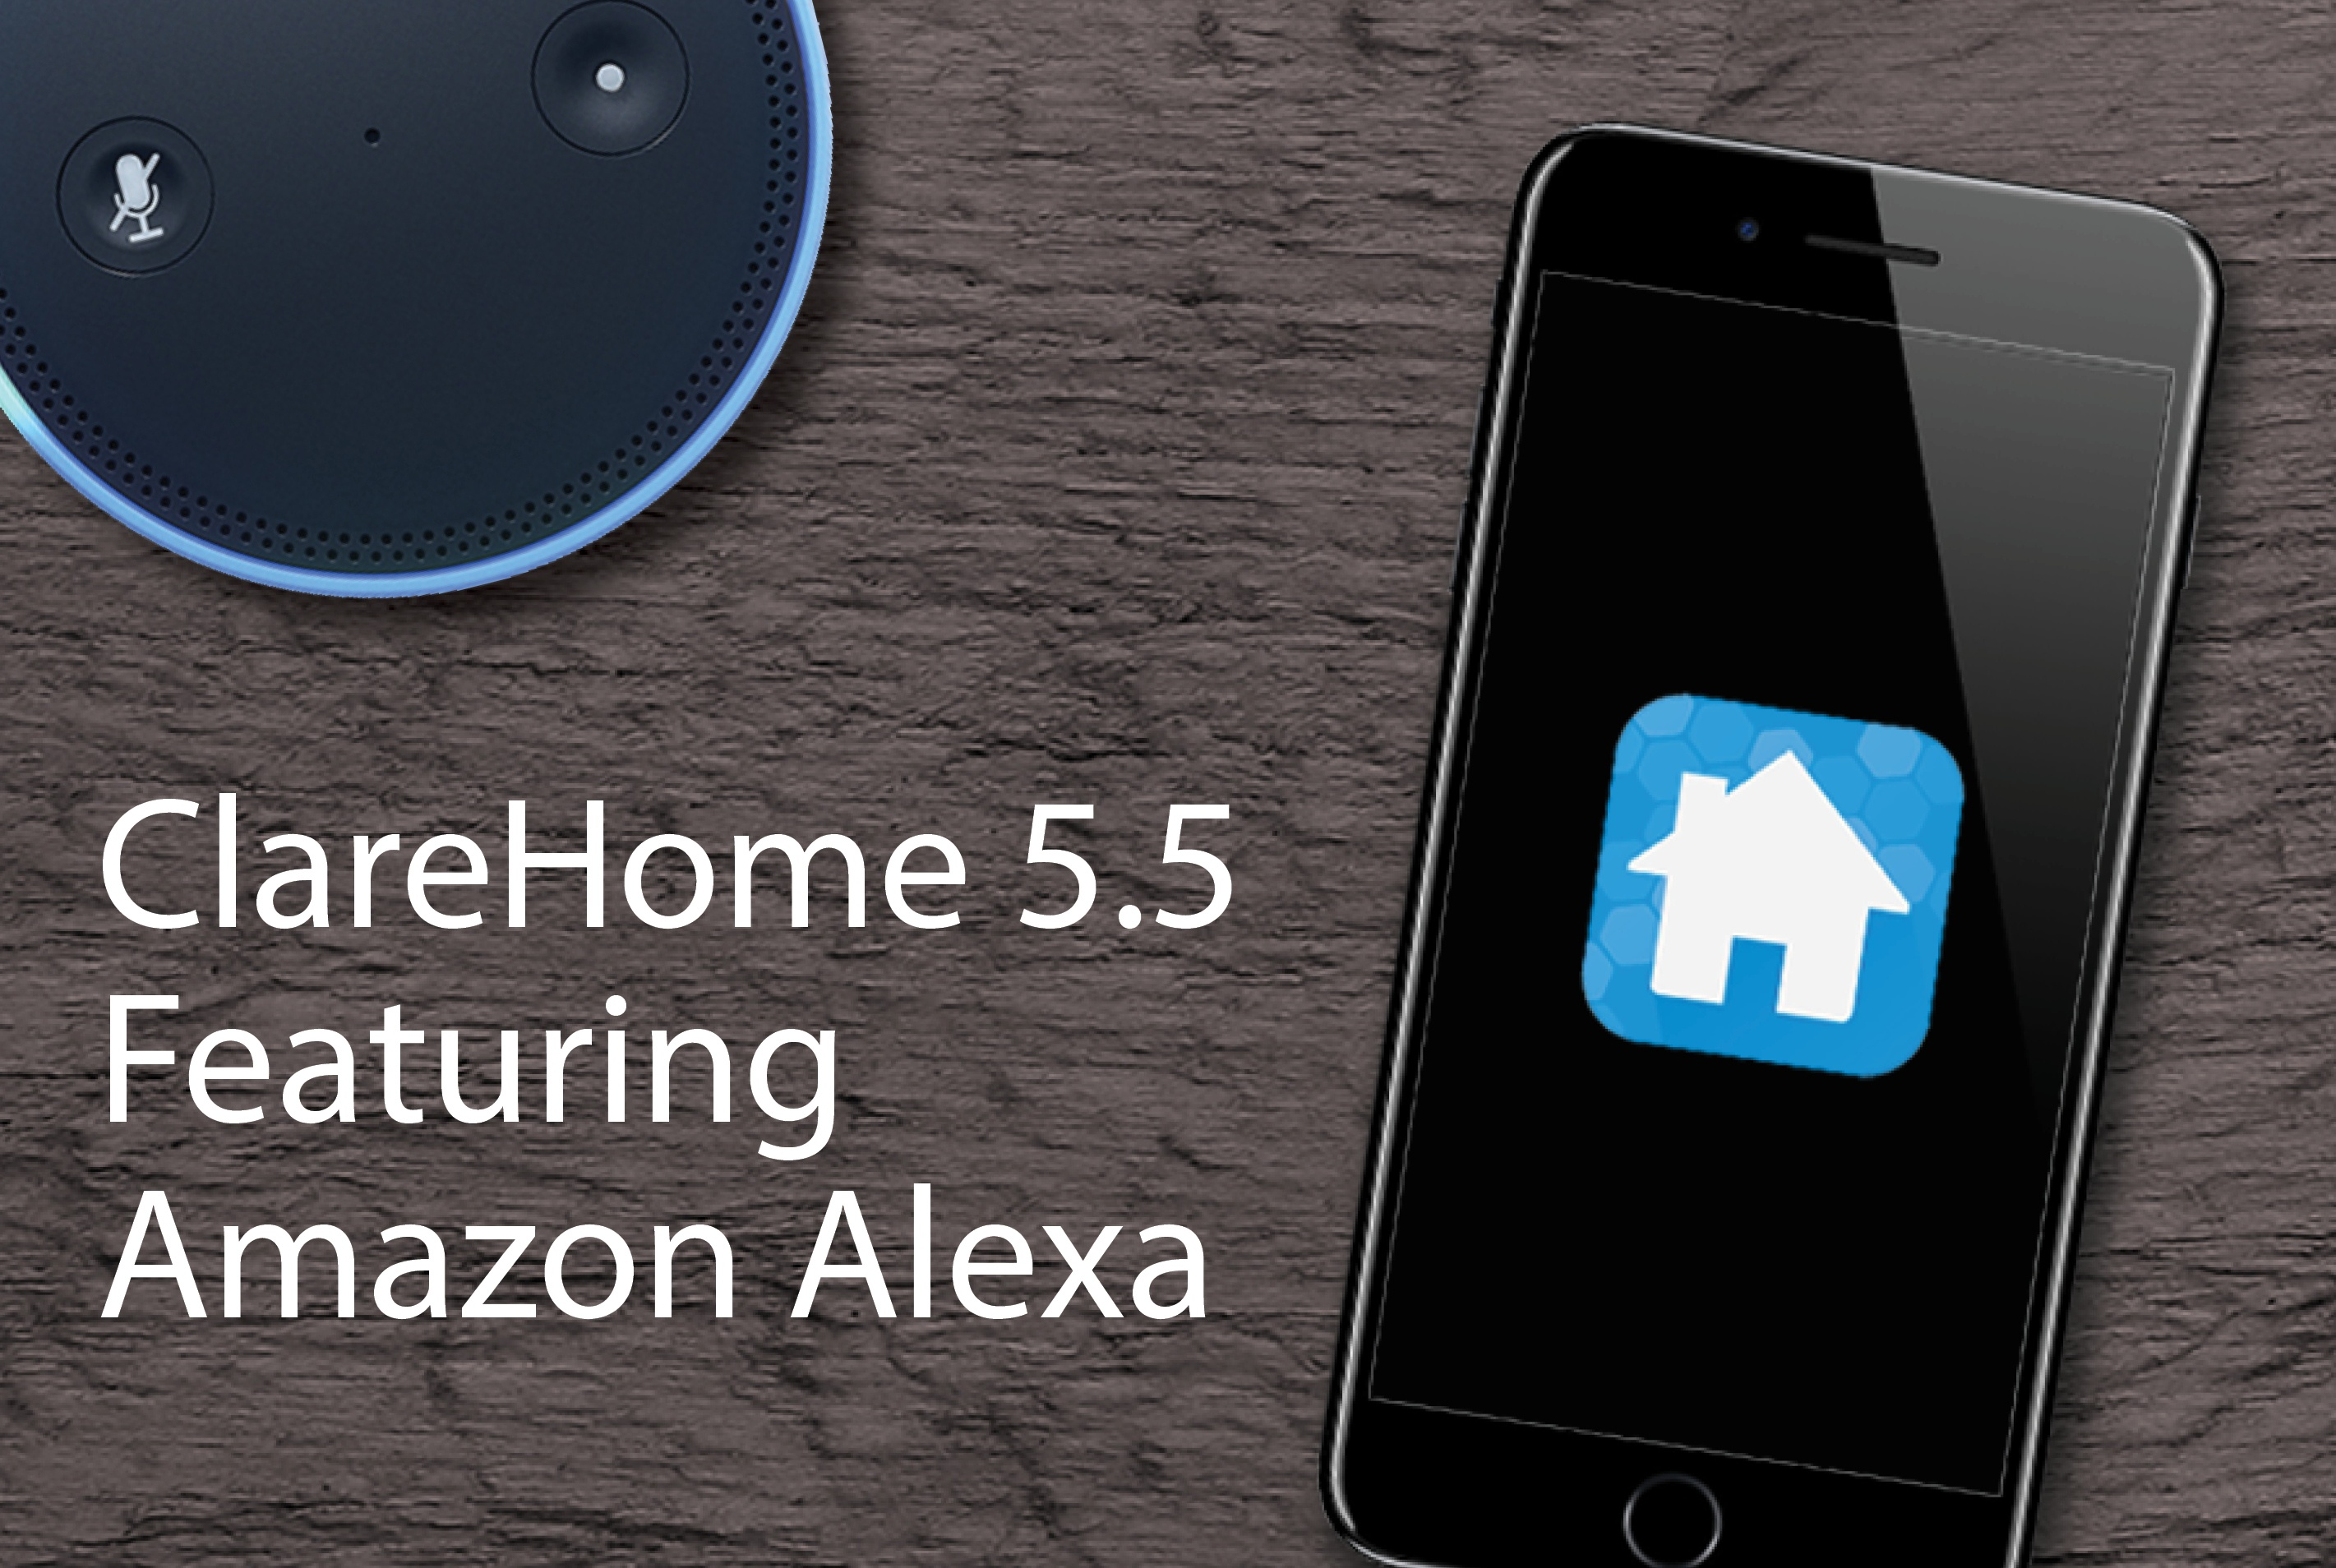 Available This Week! ClareHome version 5.5 and Amazon Alexa